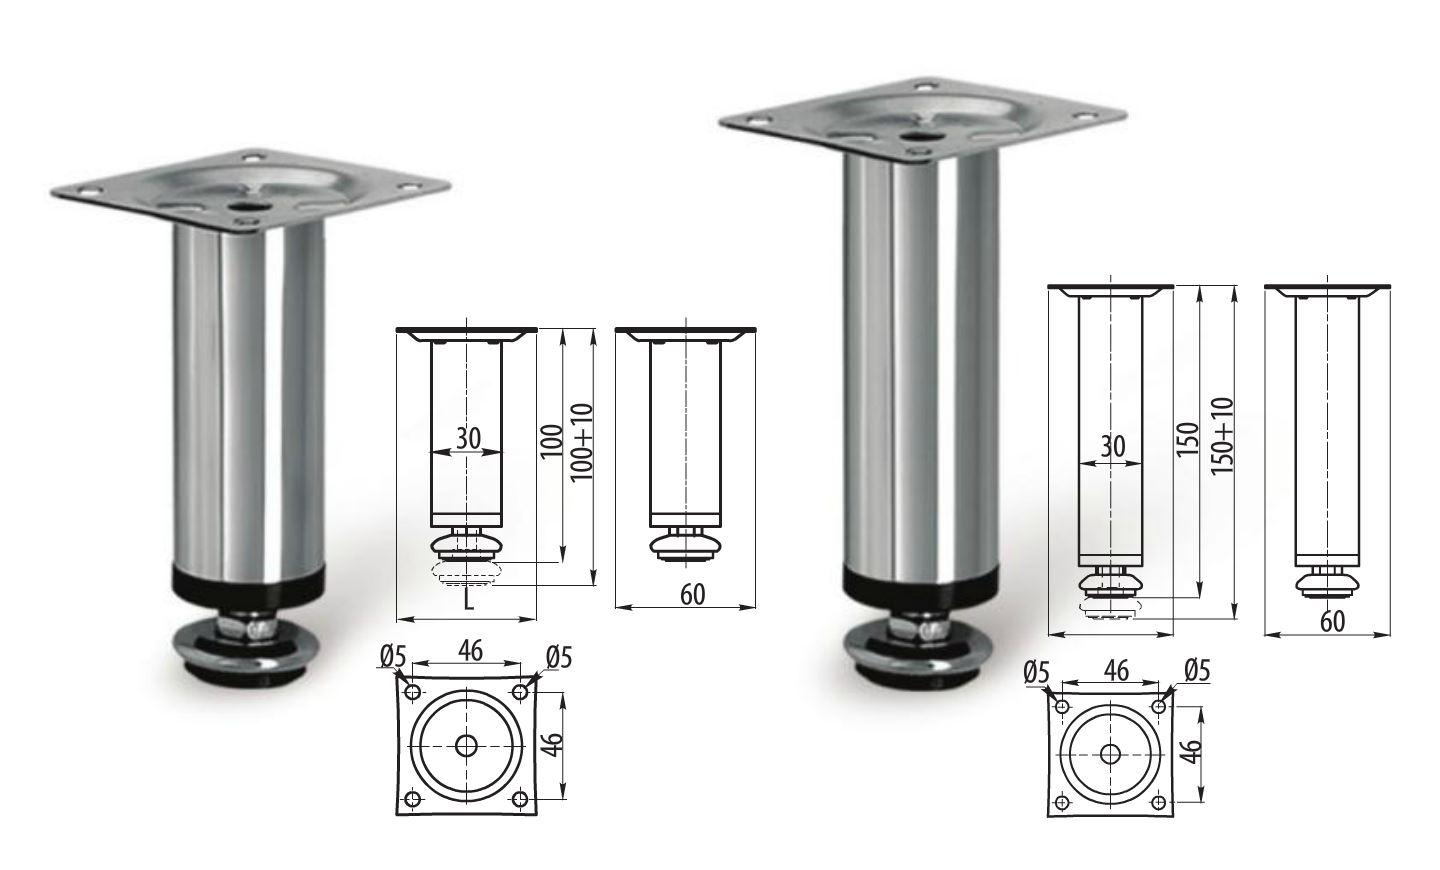 Adjustable Plinth Leg For Kitchen Cabinet/furniture/sofa Chrome Pertaining To Adjustable Sofa Legs (Image 3 of 20)